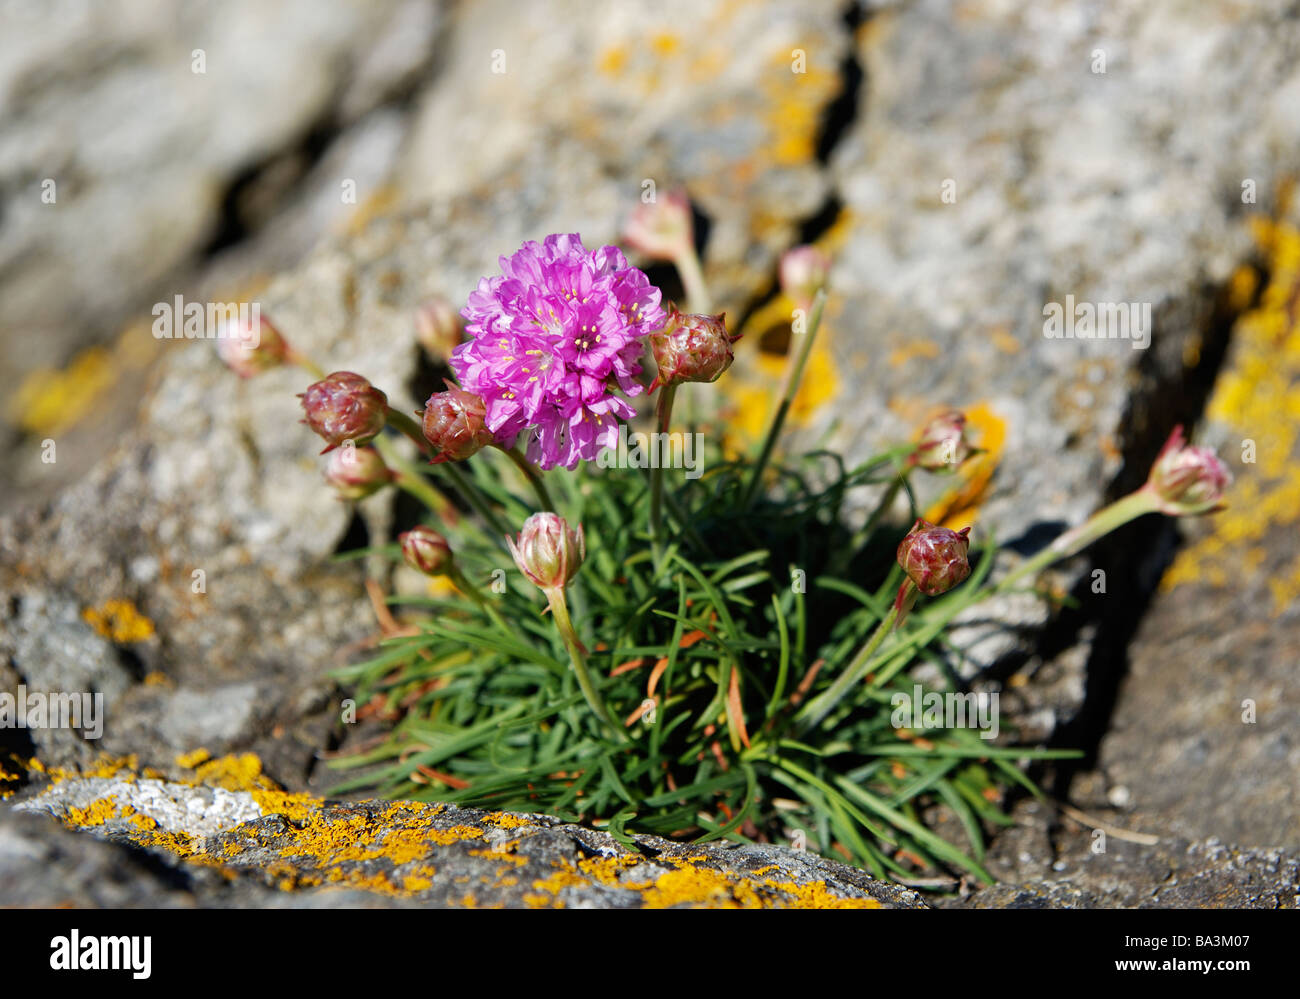 thrift plant flowering in a coastal rock crevice,cornwall,uk - Stock Image